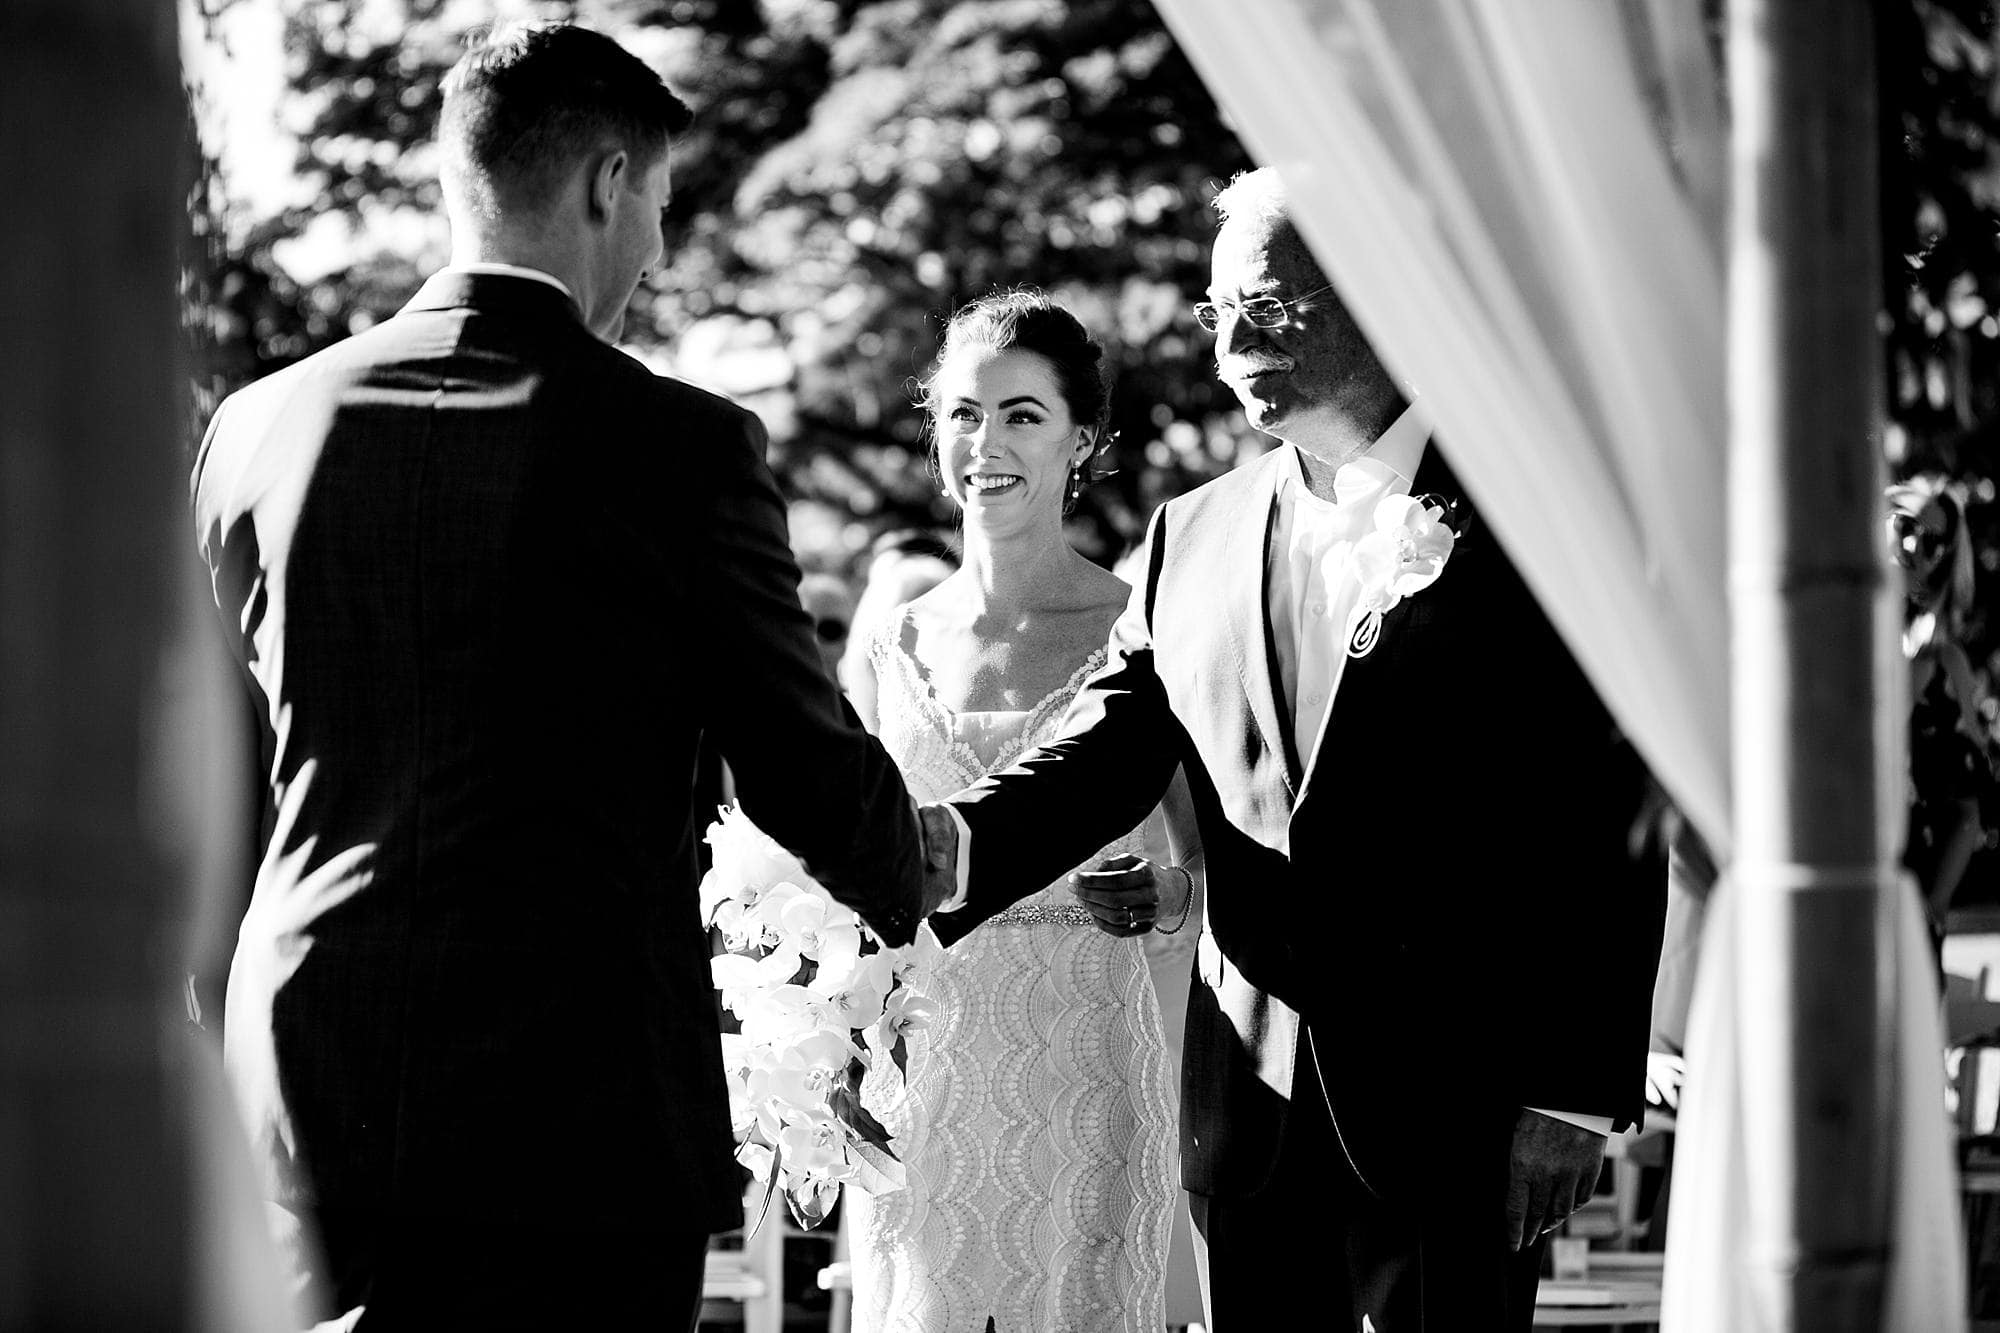 groom shaking father's hand at wedding